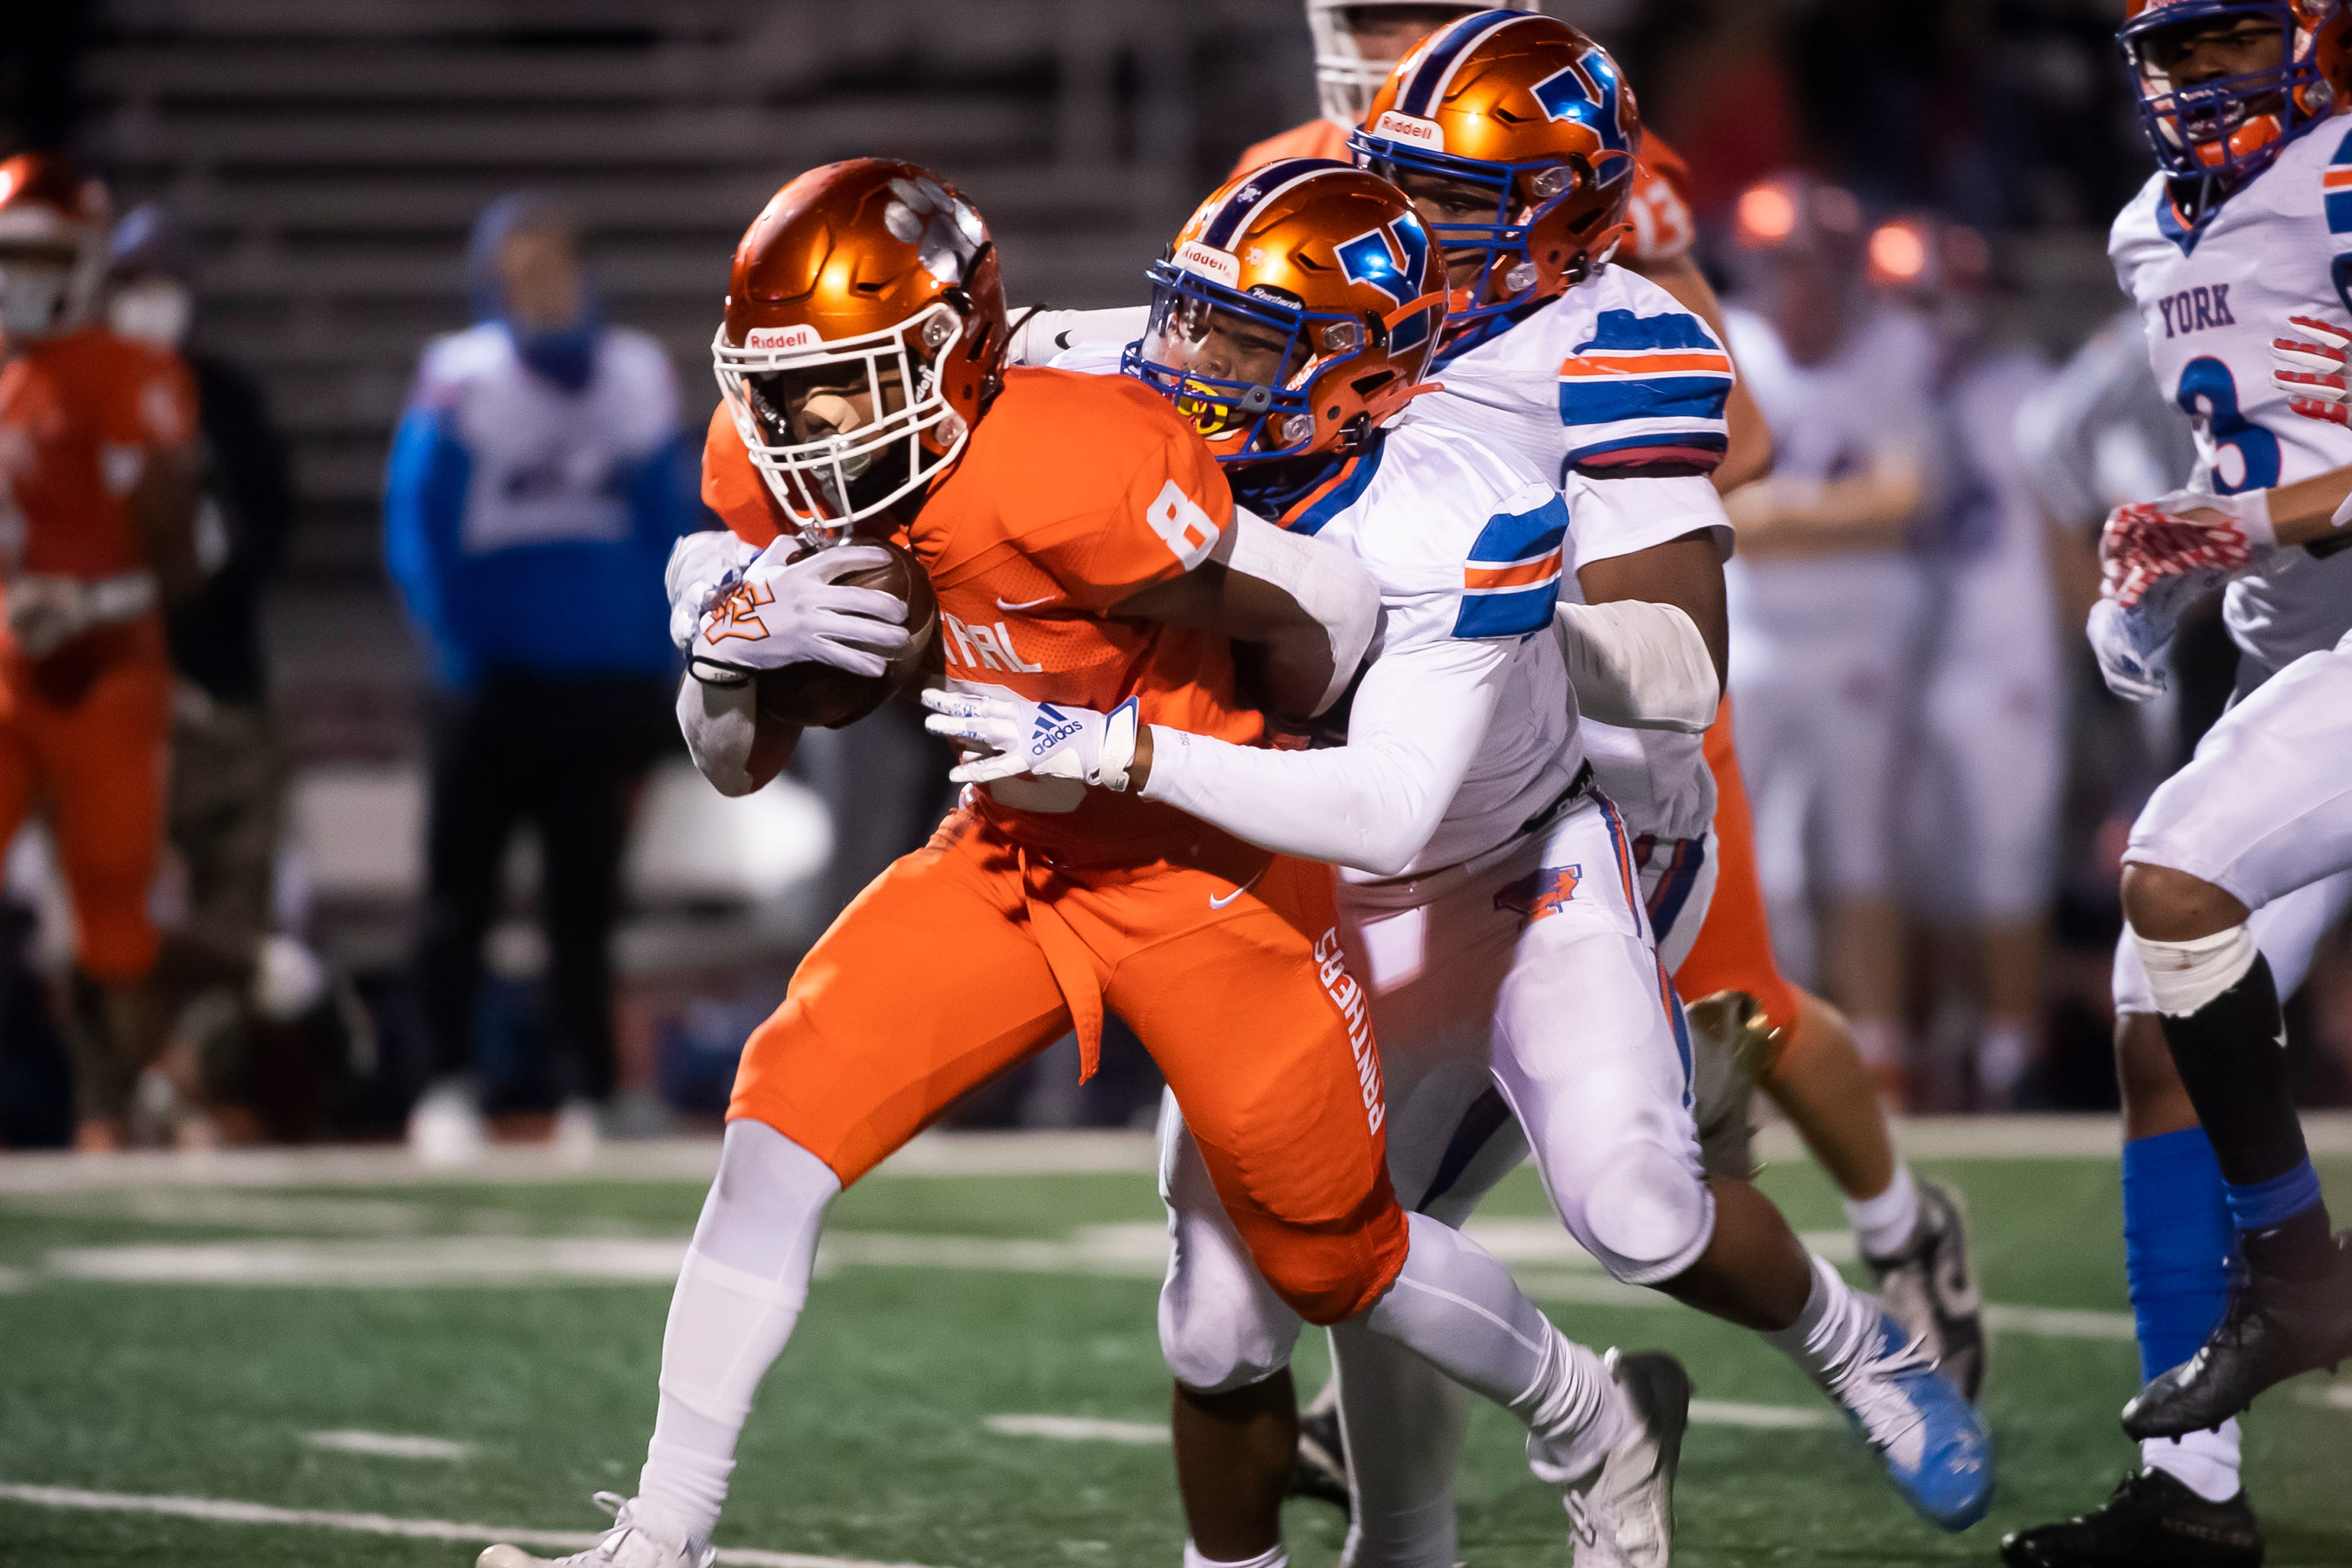 Piaa Football Central York To Face Delaware Valley In 6a Quarterfinals